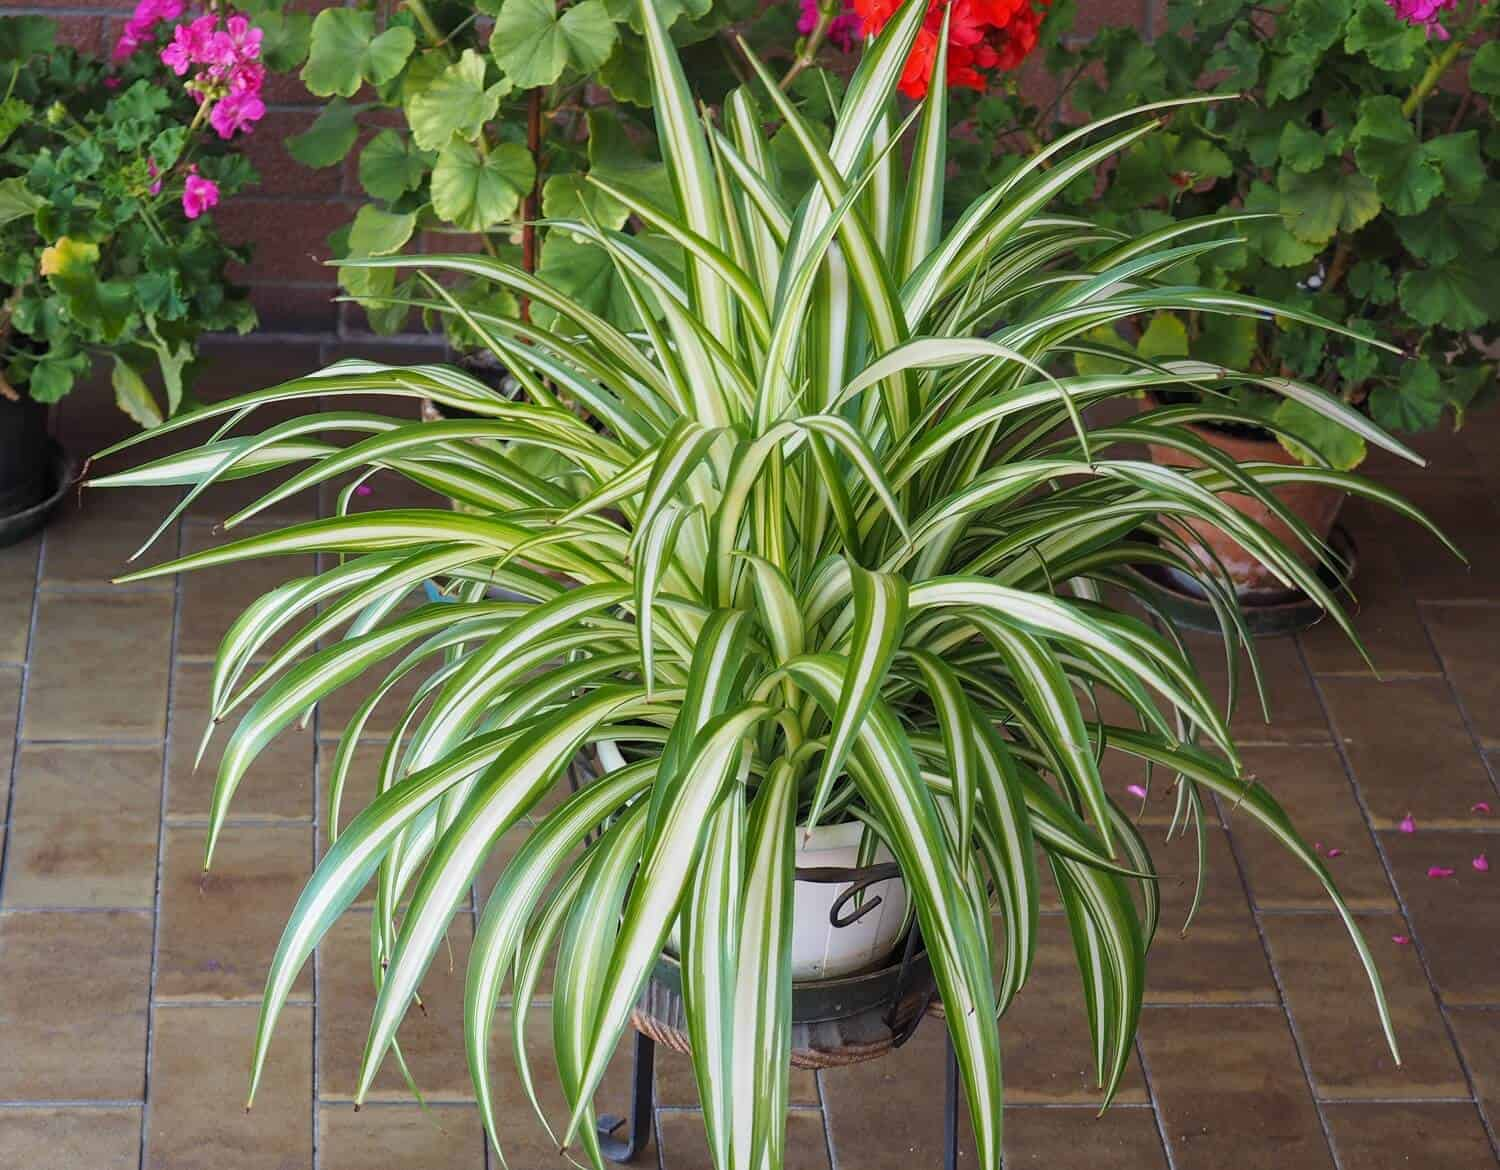 3 Best Methods for Propagating Spider Plants at Home